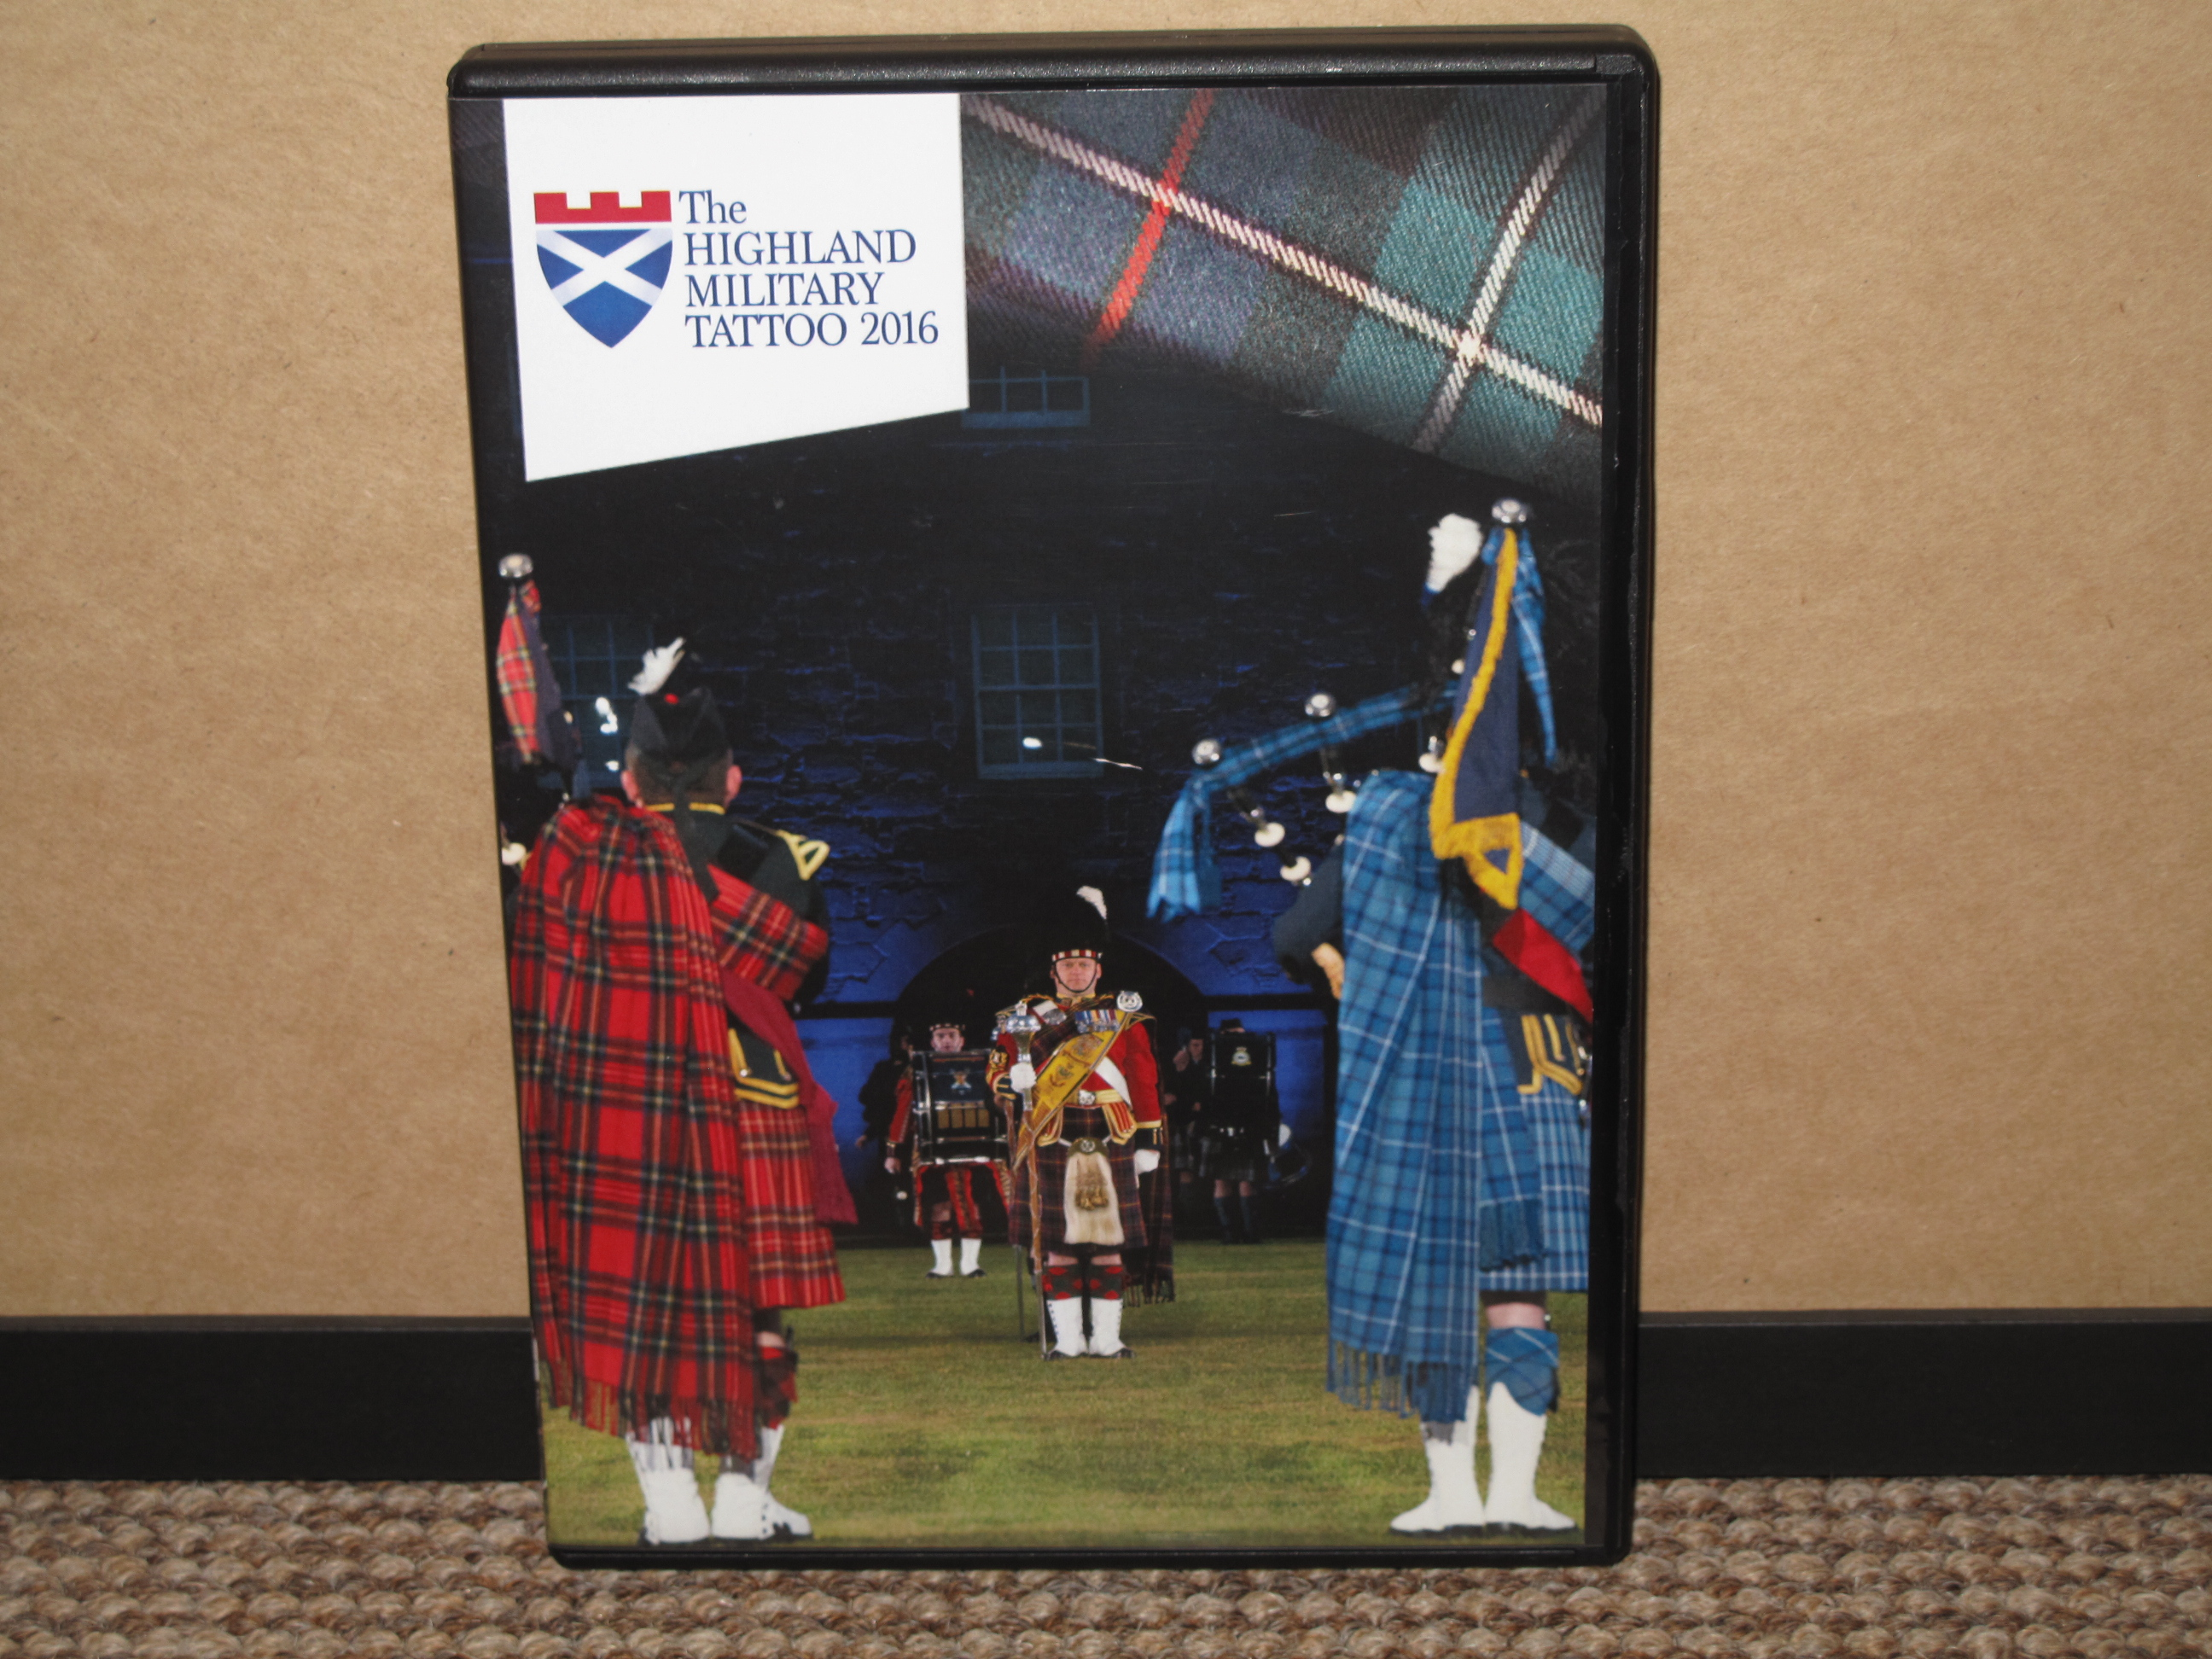 The Highland Military Tattoo DVD 2016